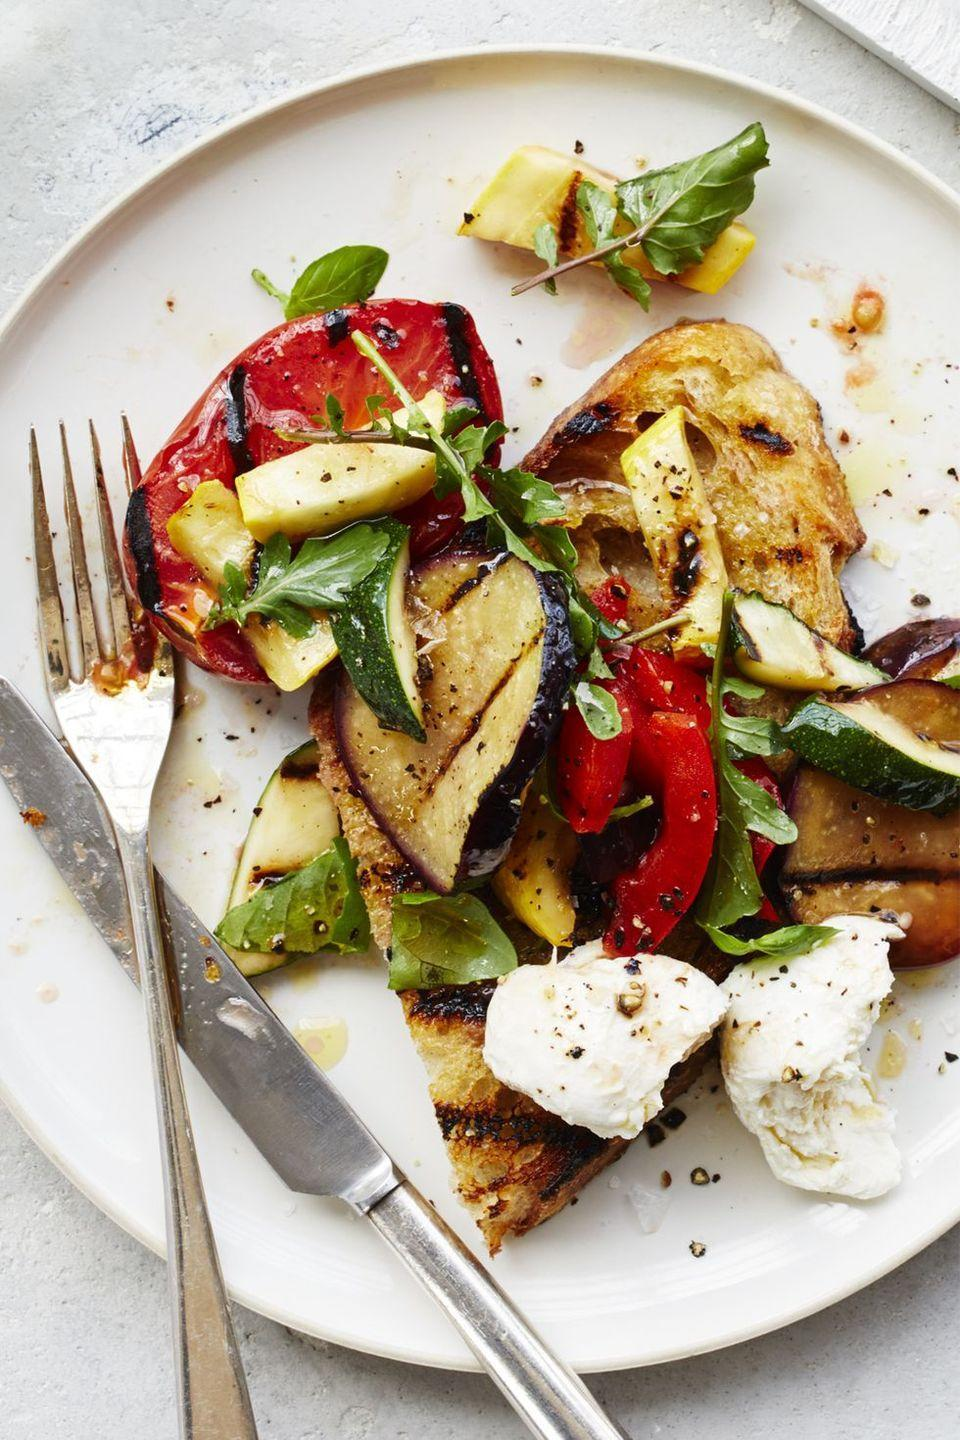 "<p>There's nothing boring about this salad that features fresh mozzarella, grilled pepper, eggplant, and zucchini. </p><p><a href=""https://www.womansday.com/food-recipes/food-drinks/recipes/a59407/ratatouille-salad-recipe/"" rel=""nofollow noopener"" target=""_blank"" data-ylk=""slk:Get the Ratatouille Salad recipe."" class=""link rapid-noclick-resp""><em><strong>Get the Ratatouille Salad recipe.</strong></em></a></p>"